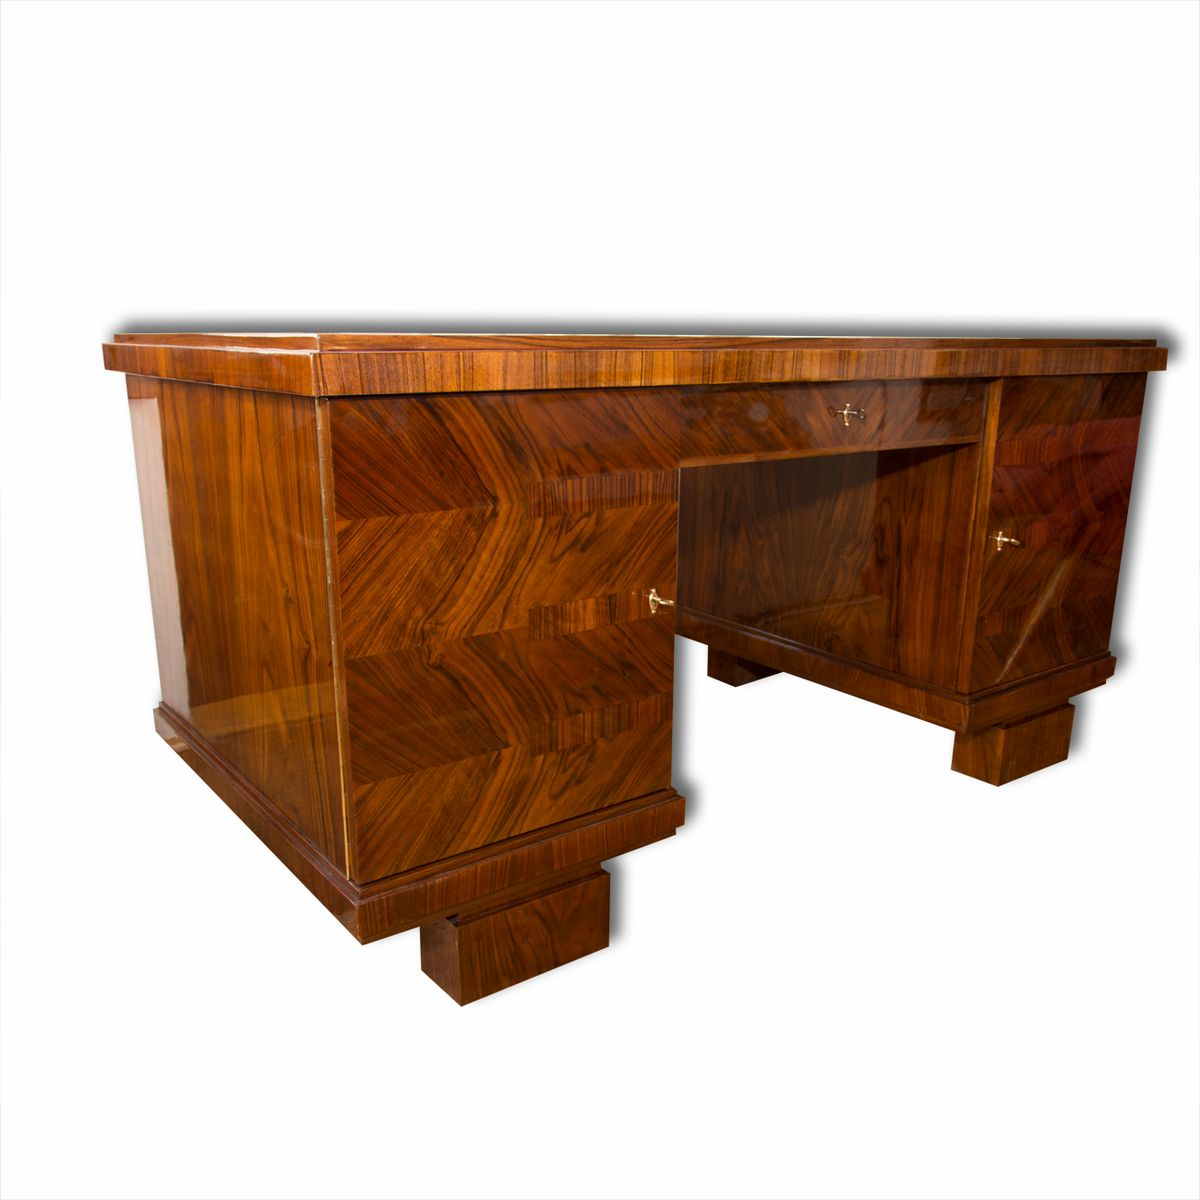 Art deco writing desk in walnut 1930s for sale at pamono for Art deco writing